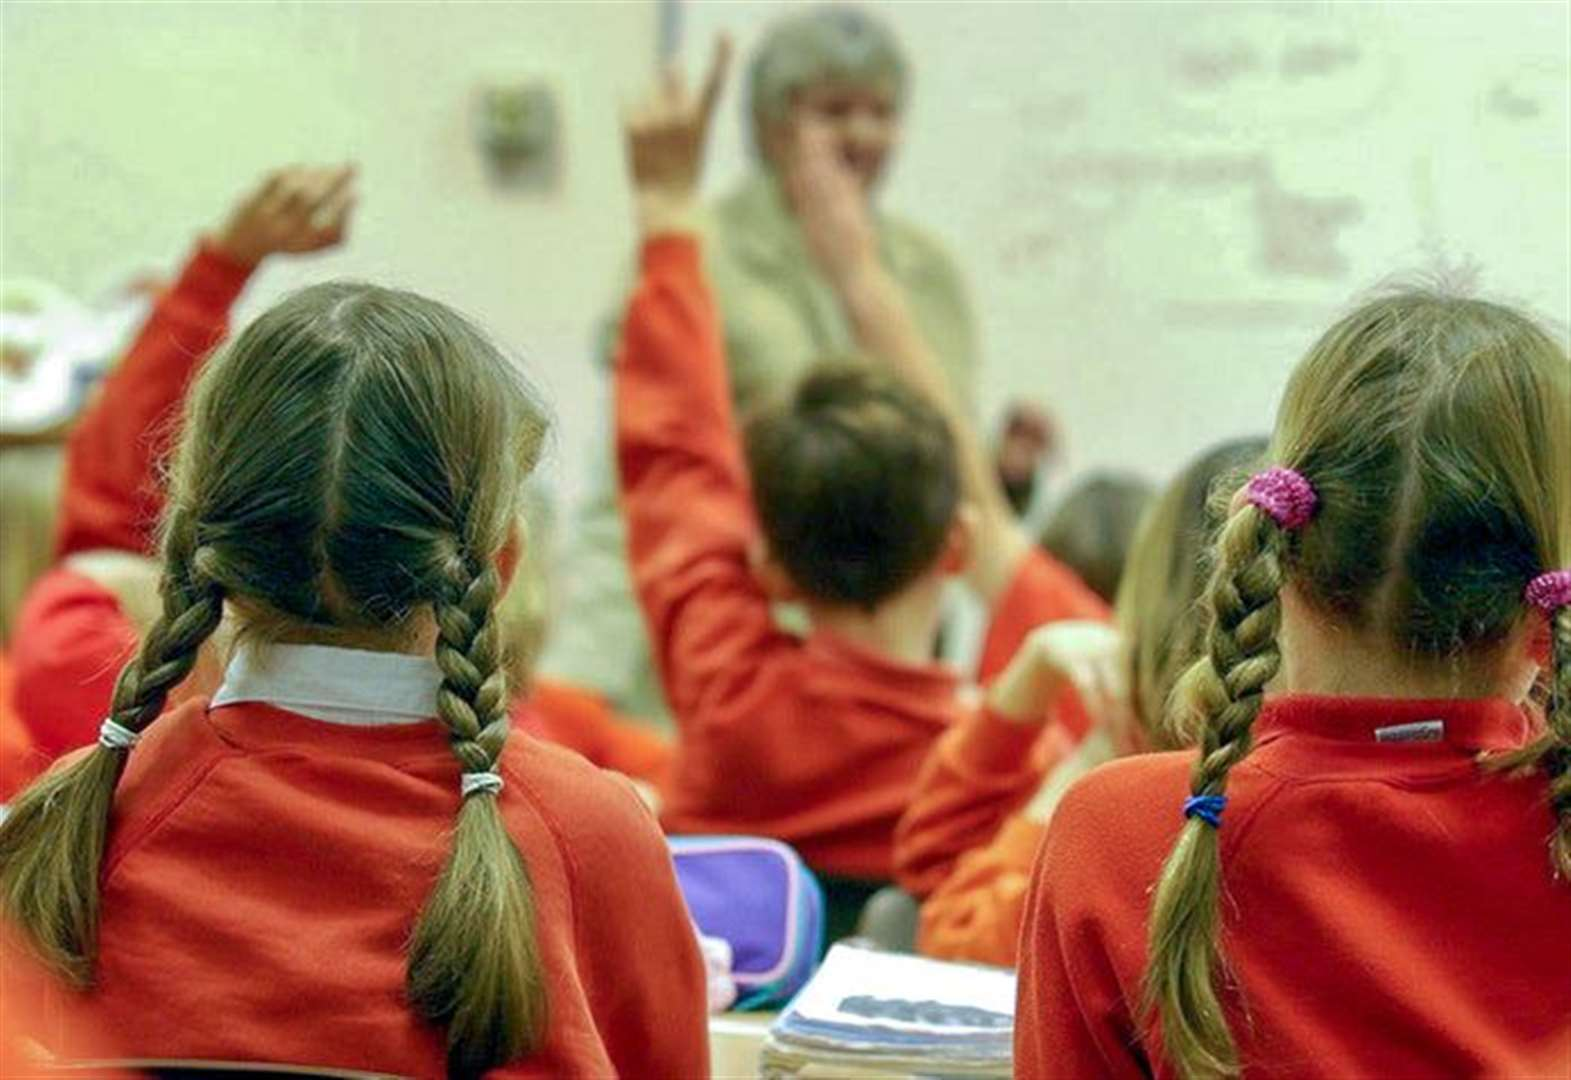 More parents than ever fined for children's poor school attendance in Cambridgeshire